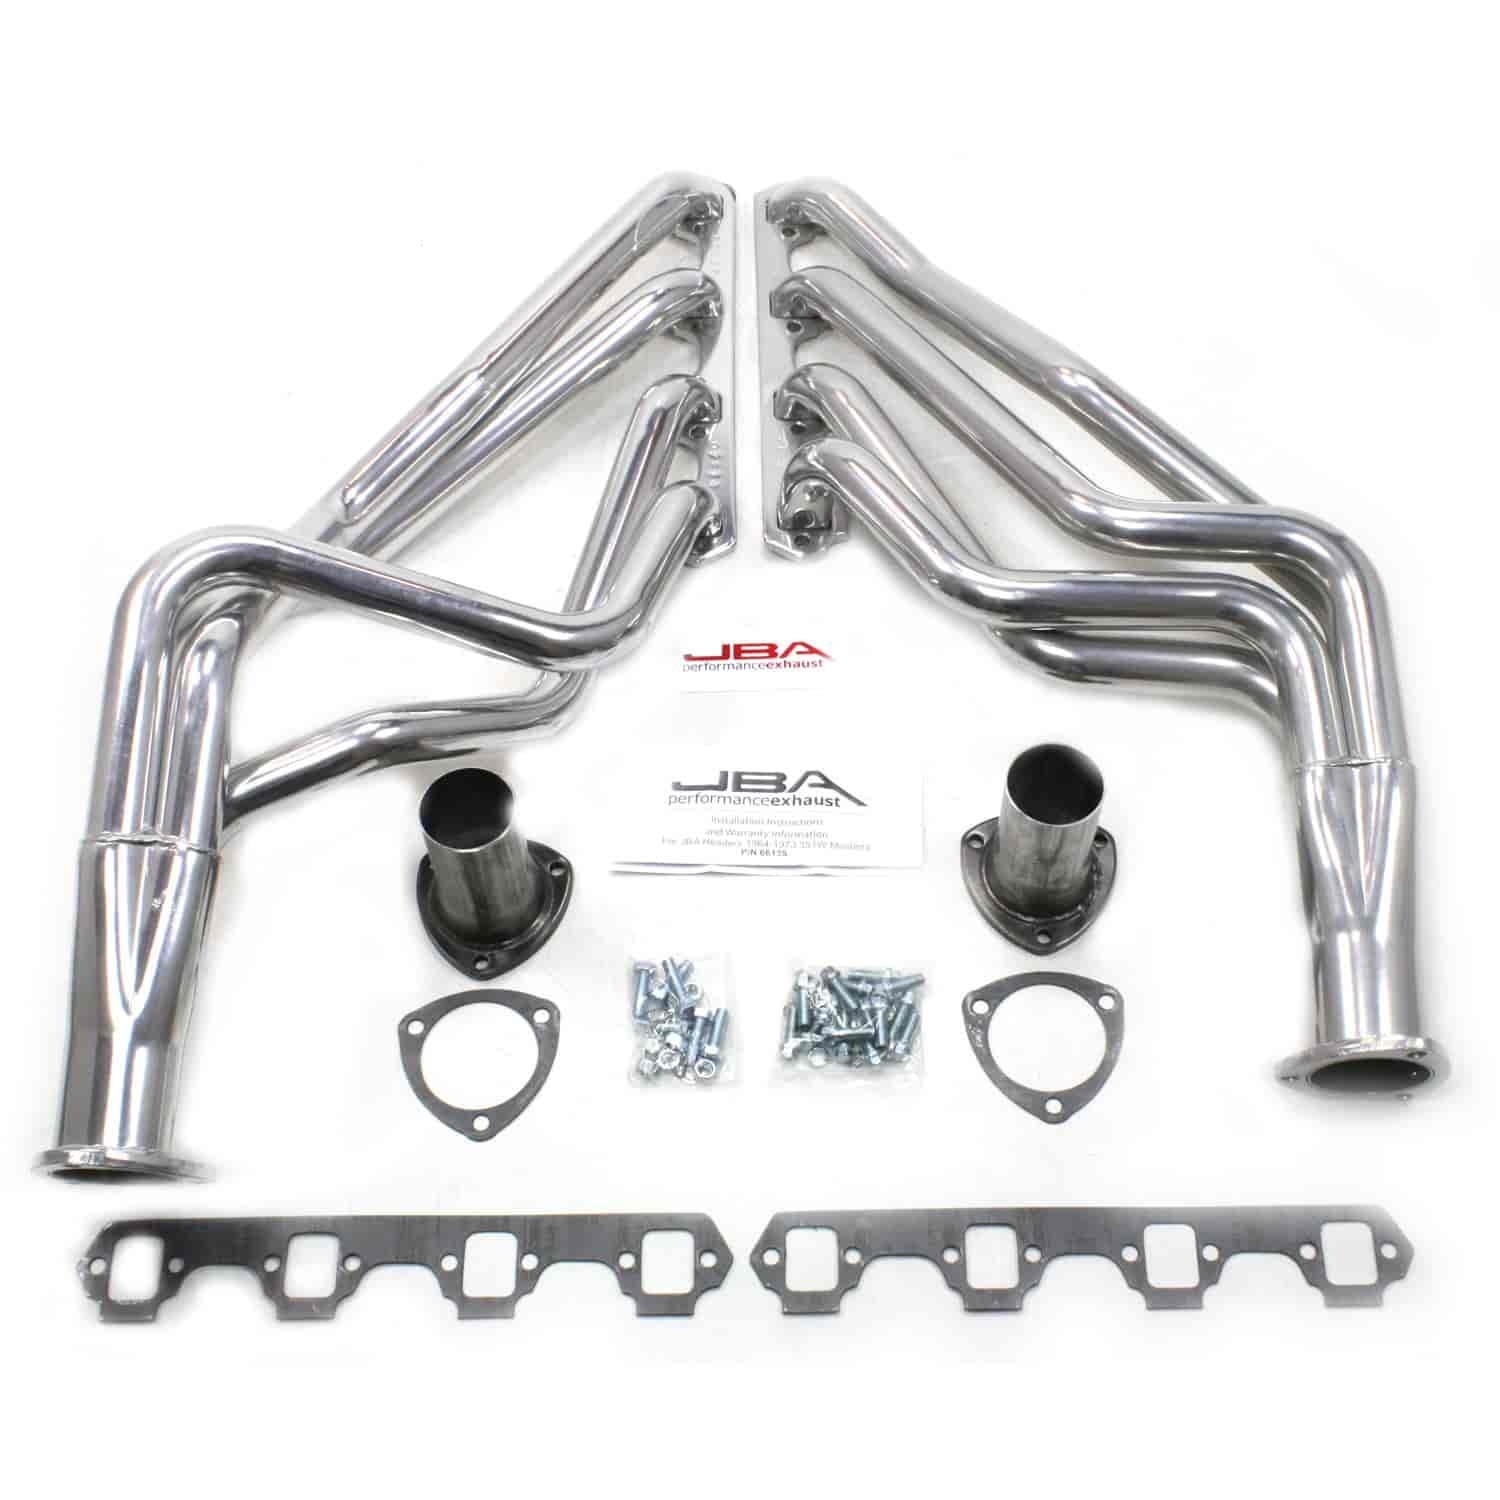 Jba Sjs Long Tube Headers 73 Mustang 351w